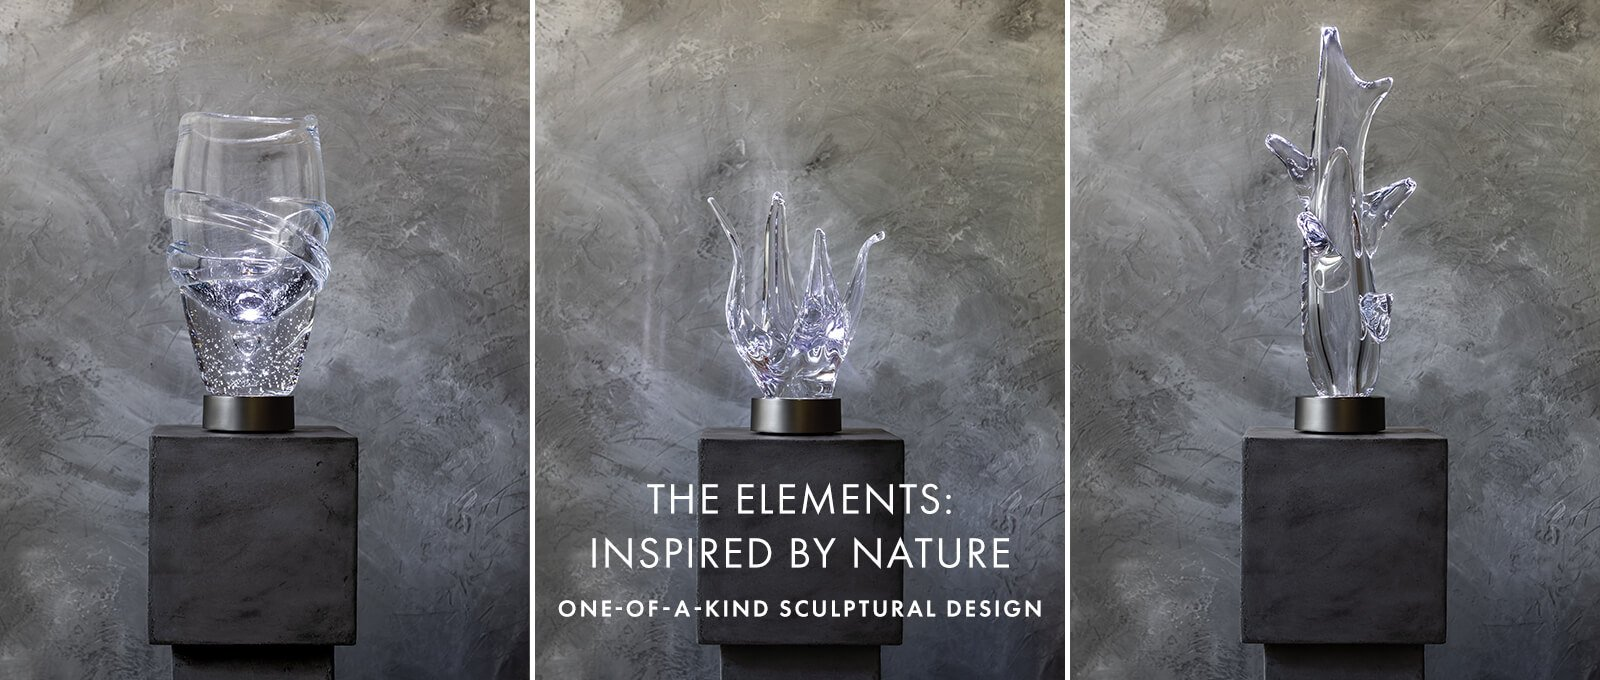 THE ELEMENTS: INSPIRED BY NATURE — ONE-OF-A KIND SCULPTURAL DESIGN